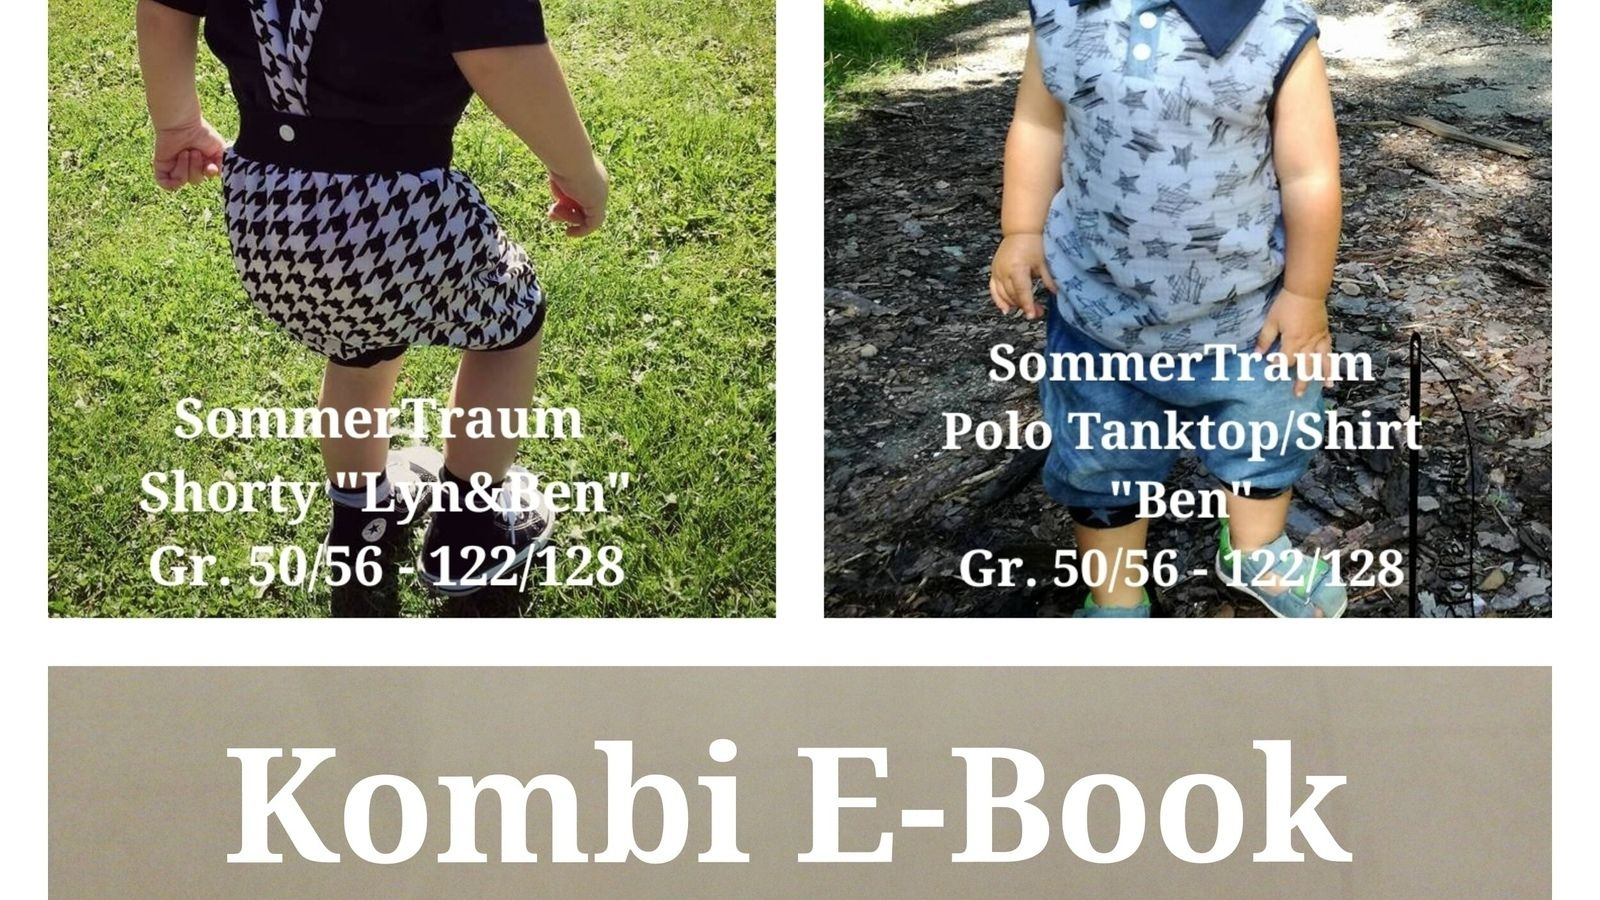 Schnittmuster Kombi Ebook SommerTraum Polo Tanktop Shirt und Shorty ...